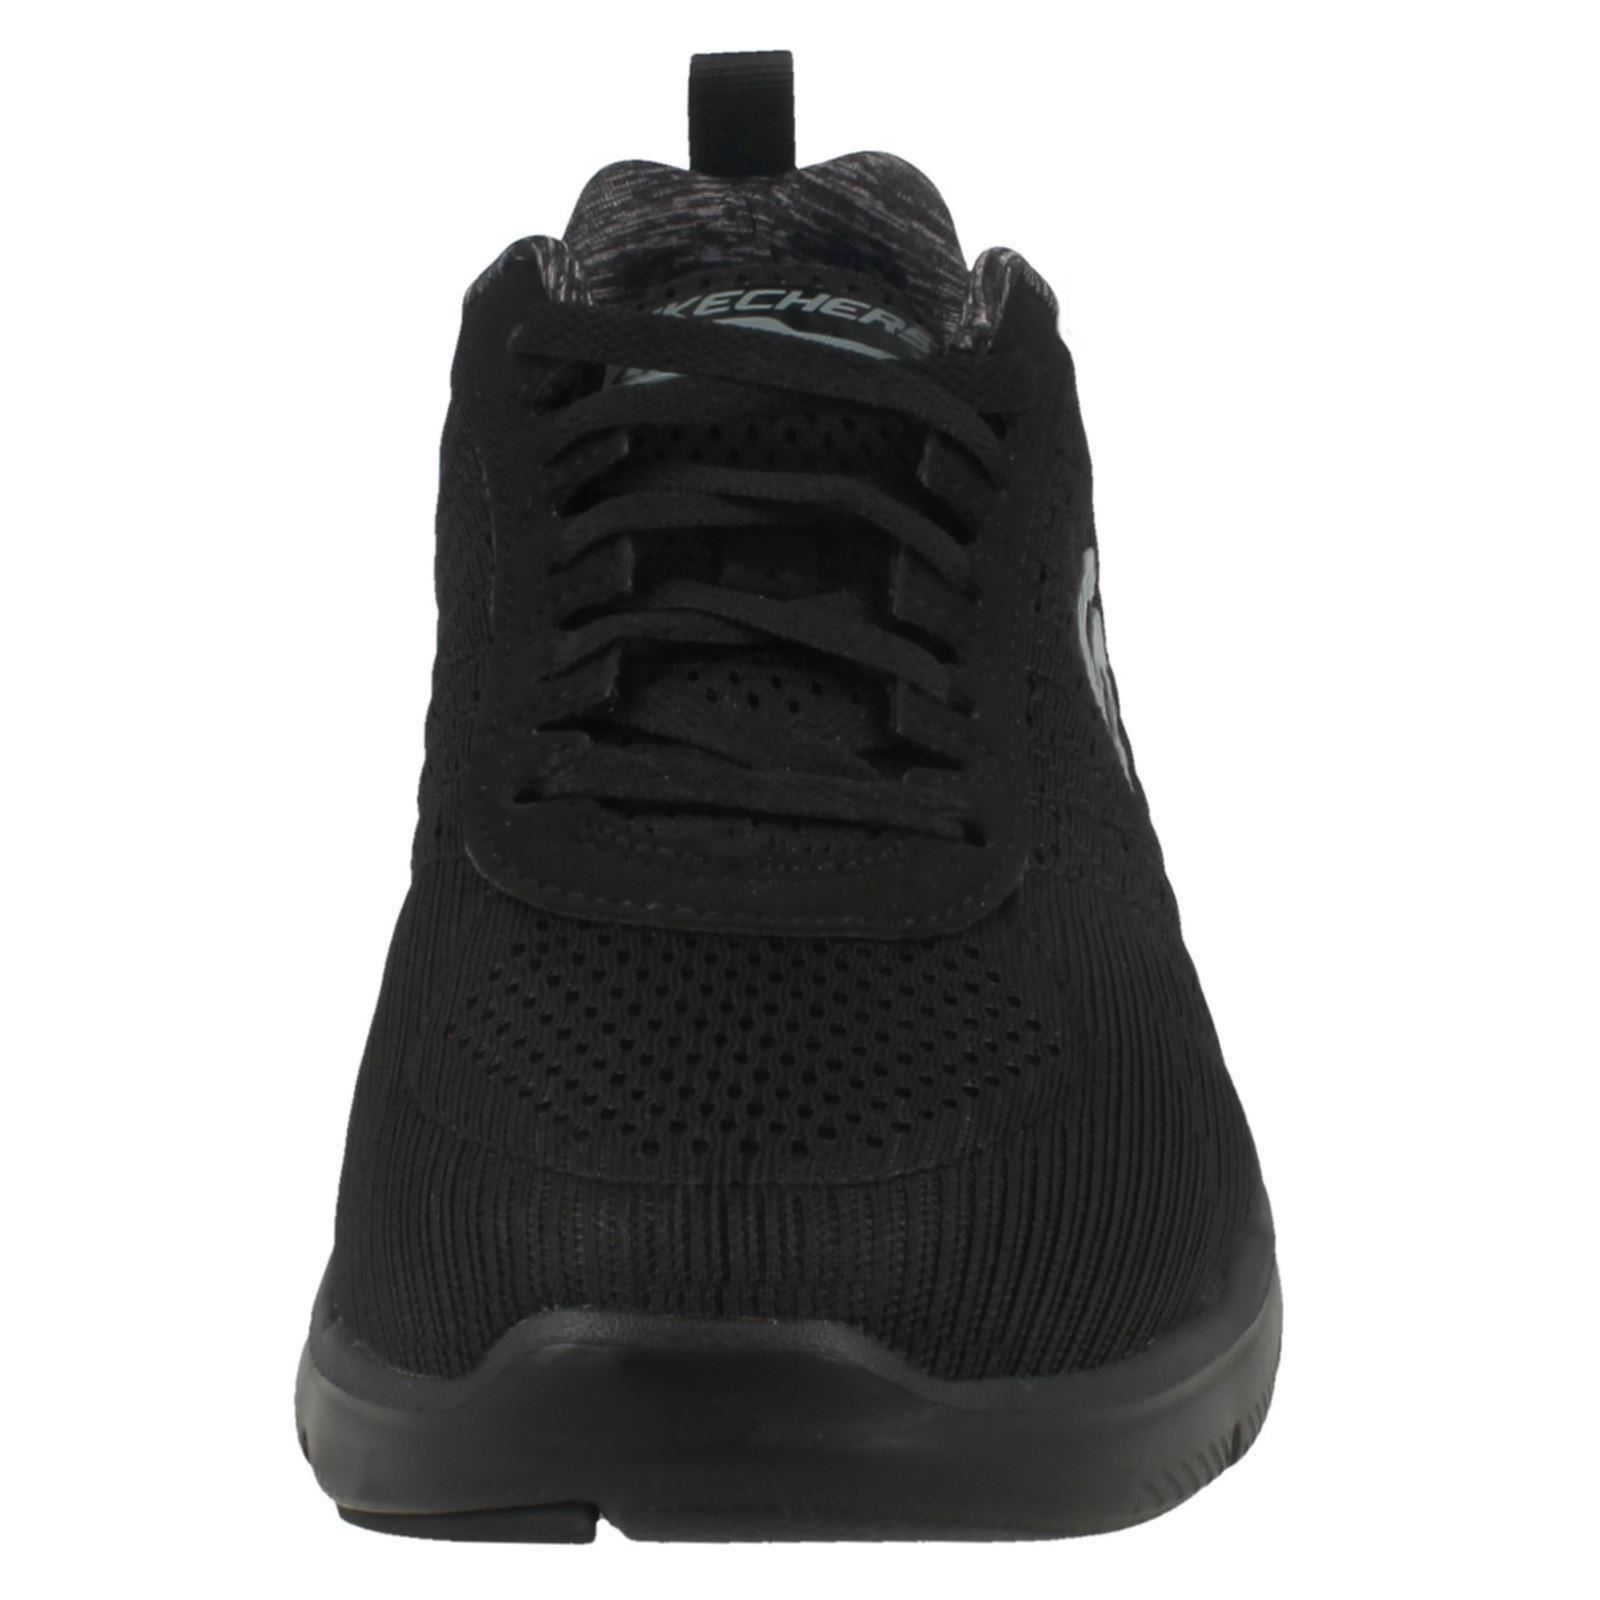 Skechers Trainers  Uomo Air Cooled Trainers Skechers - The Happs 52185 3a6678